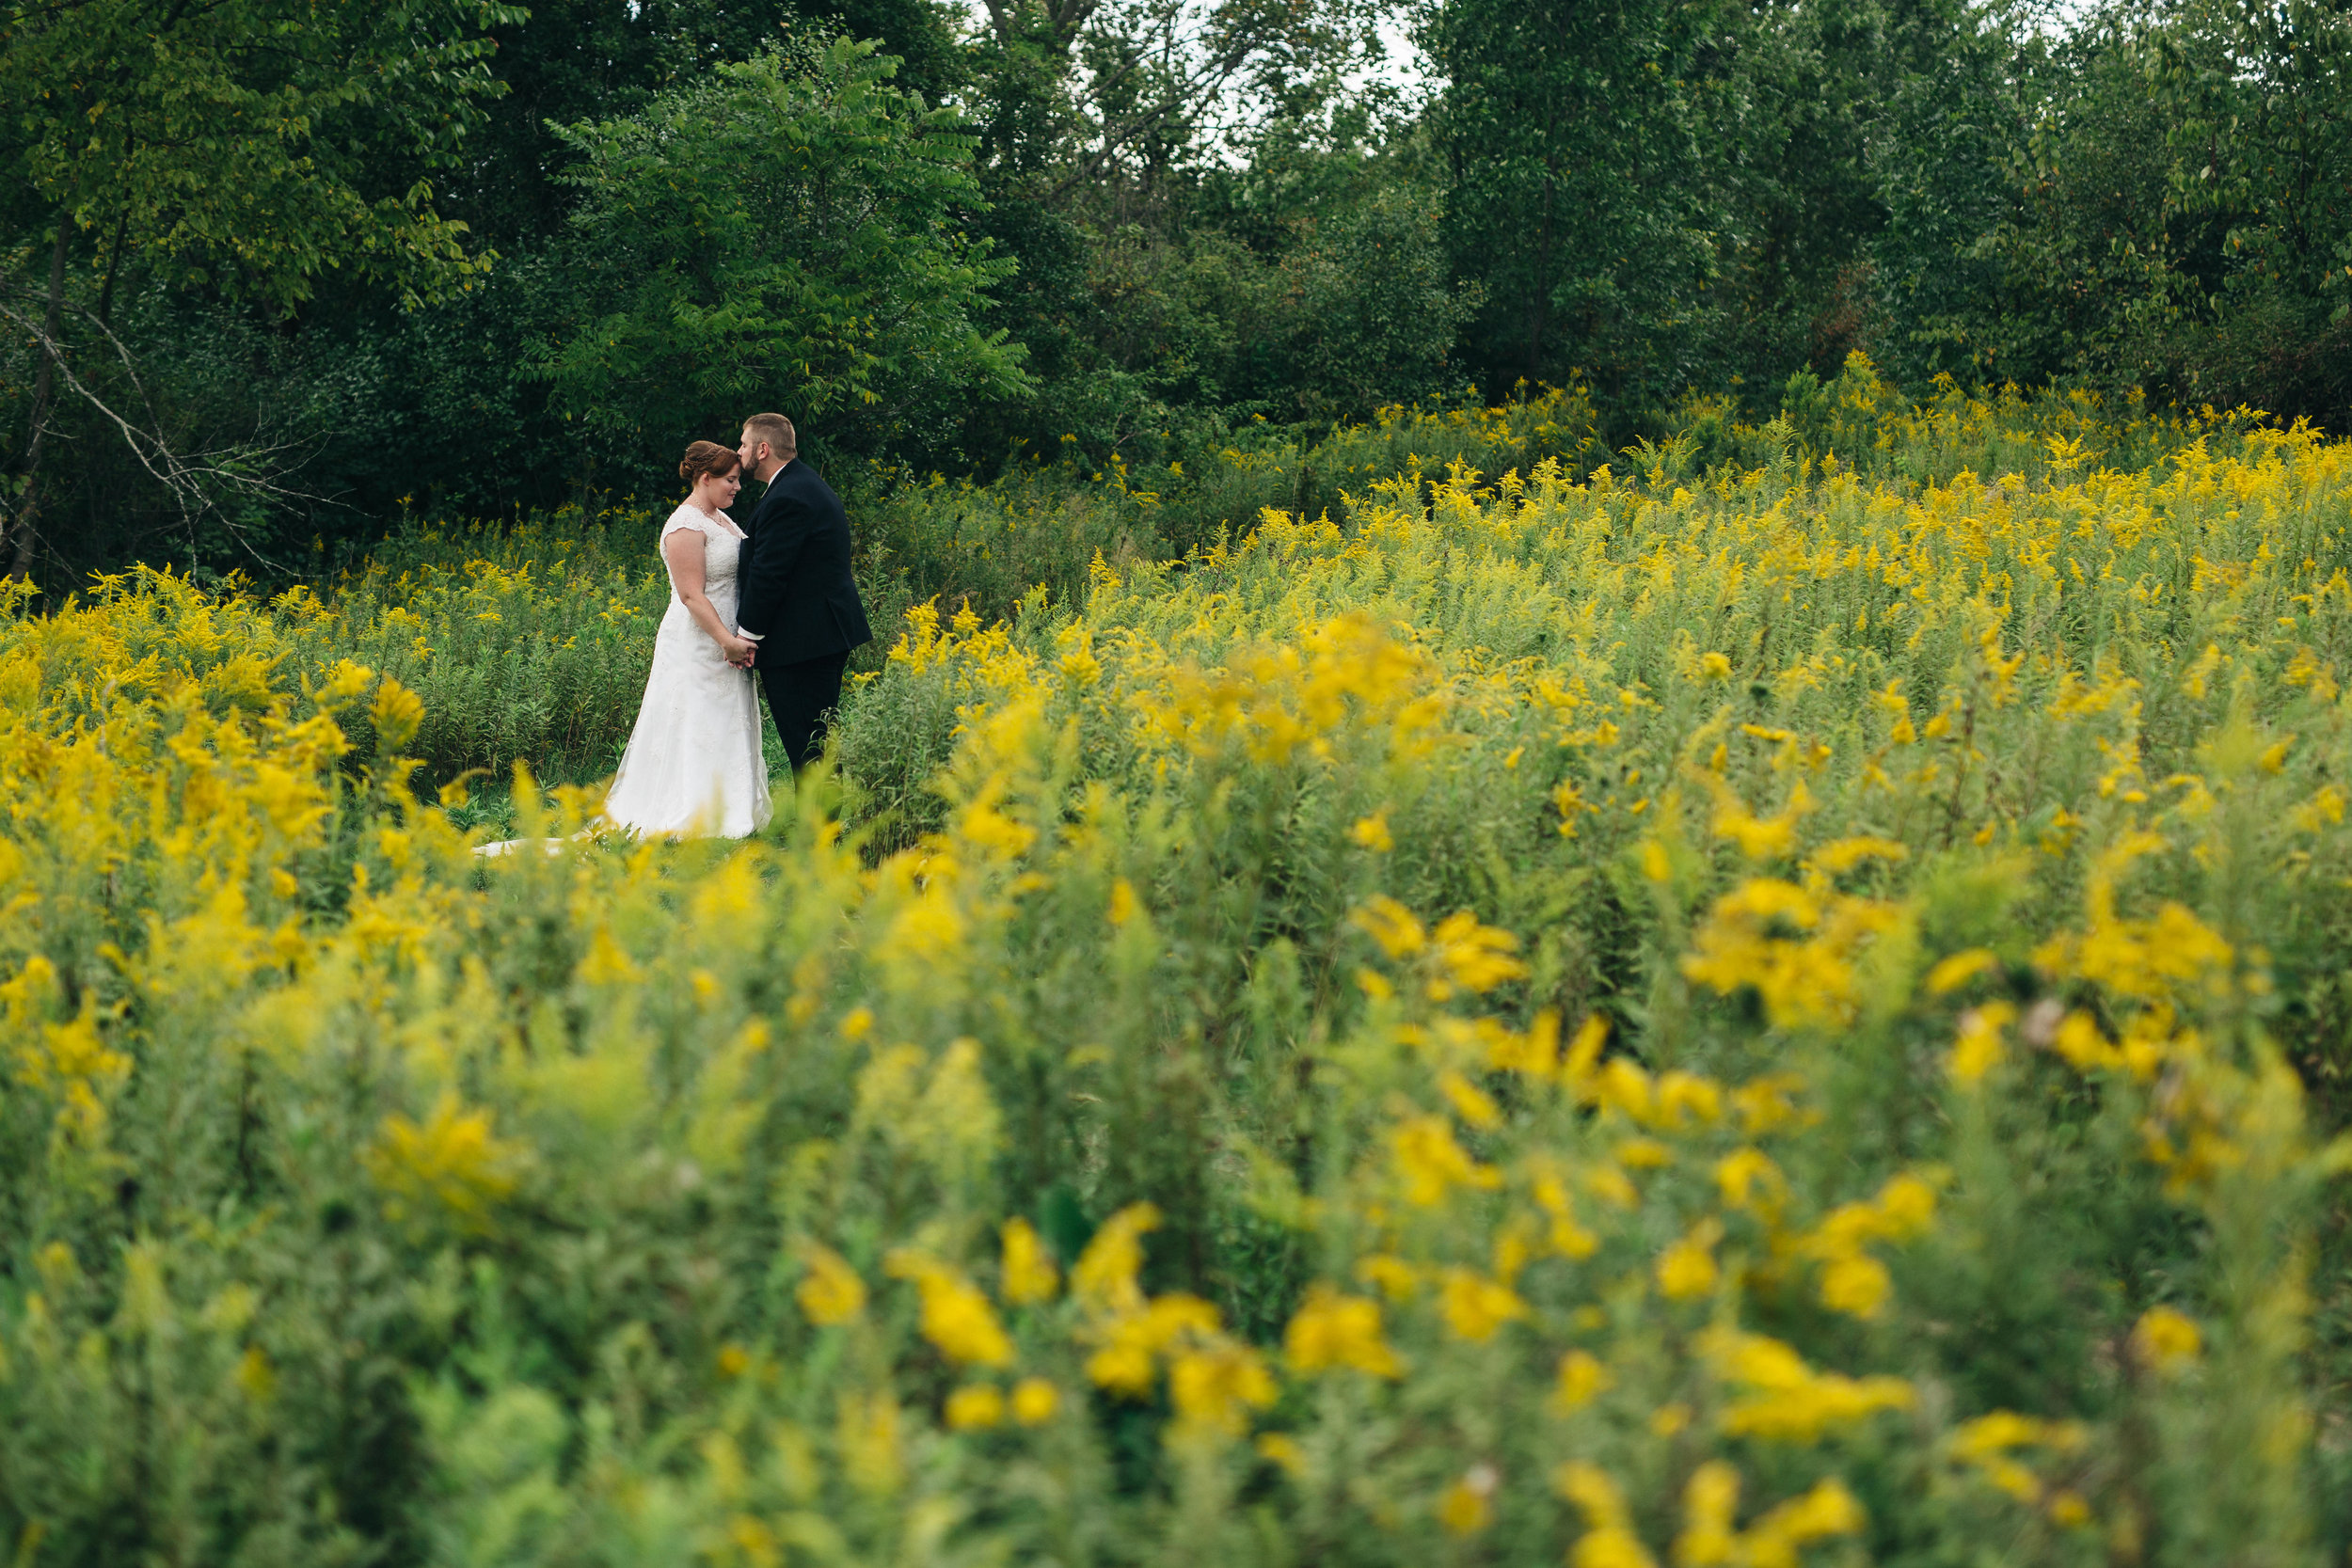 Bride and groom on wedding day at Walden Inn & Spa near Cleveland, Ohio